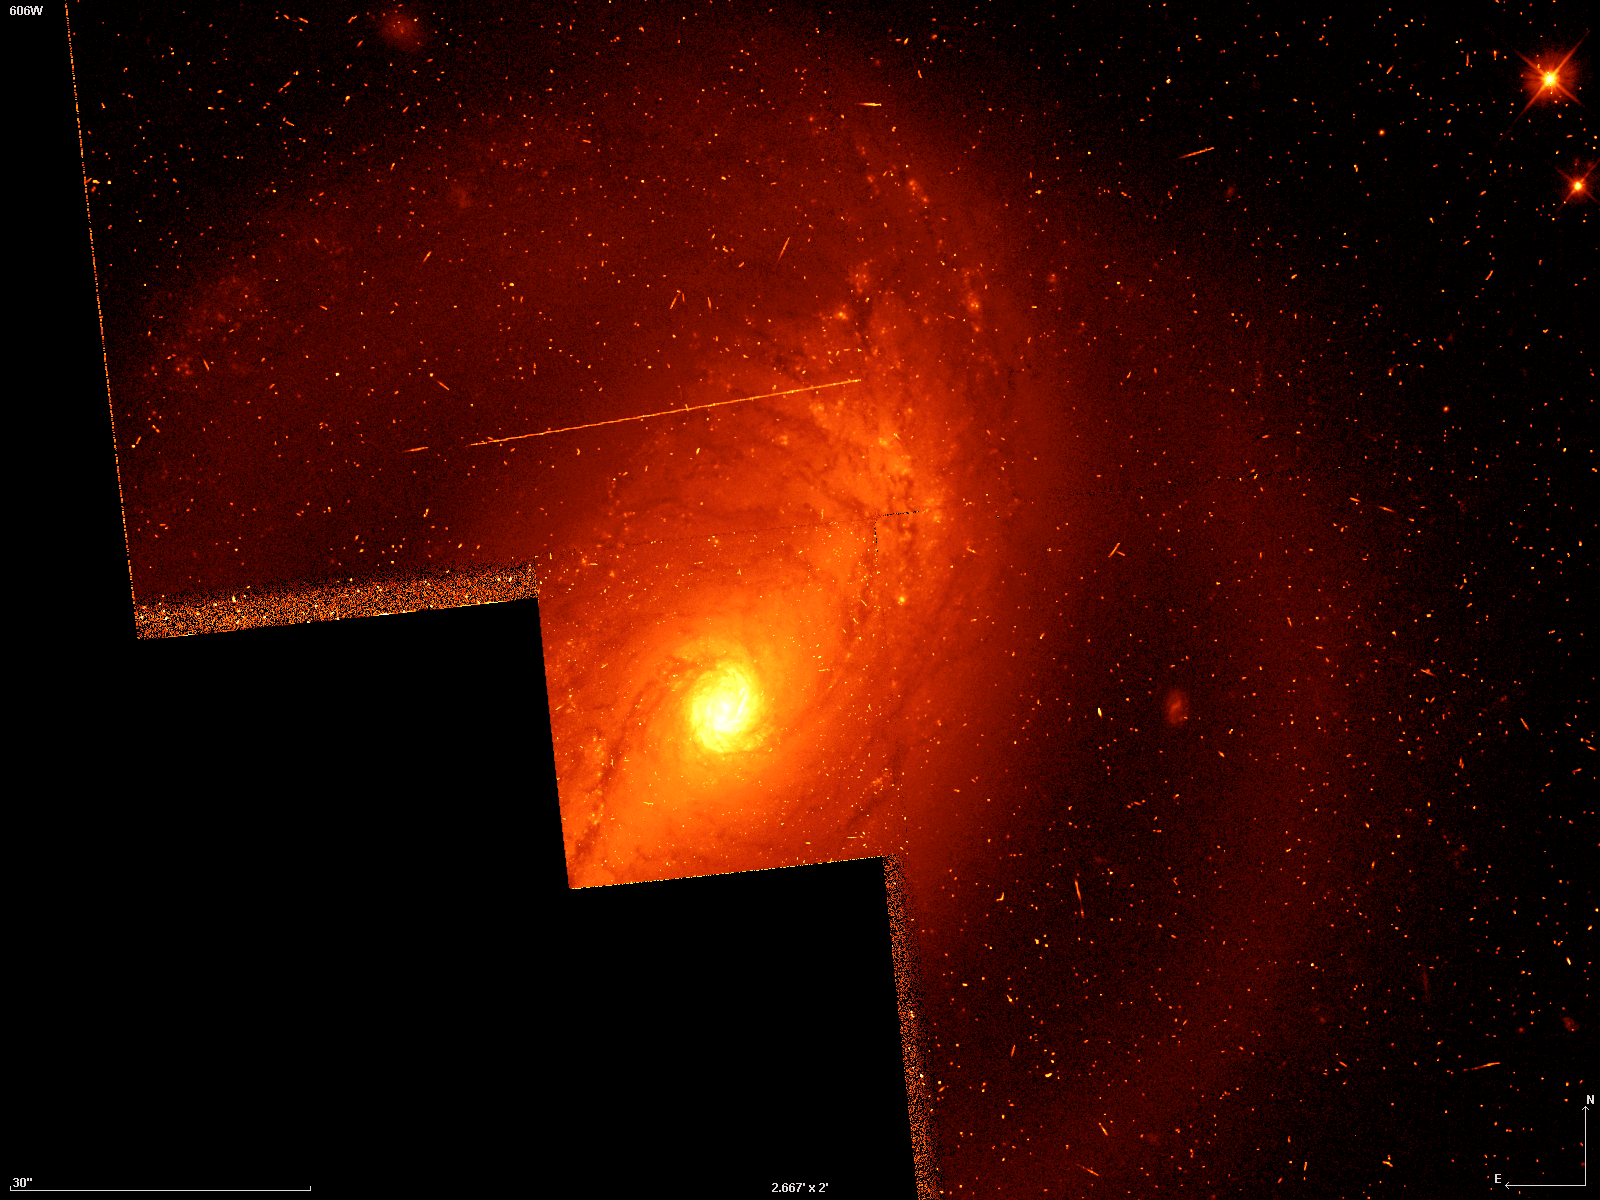 File Ngc3504 Hst 606 Png Wikimedia Commons